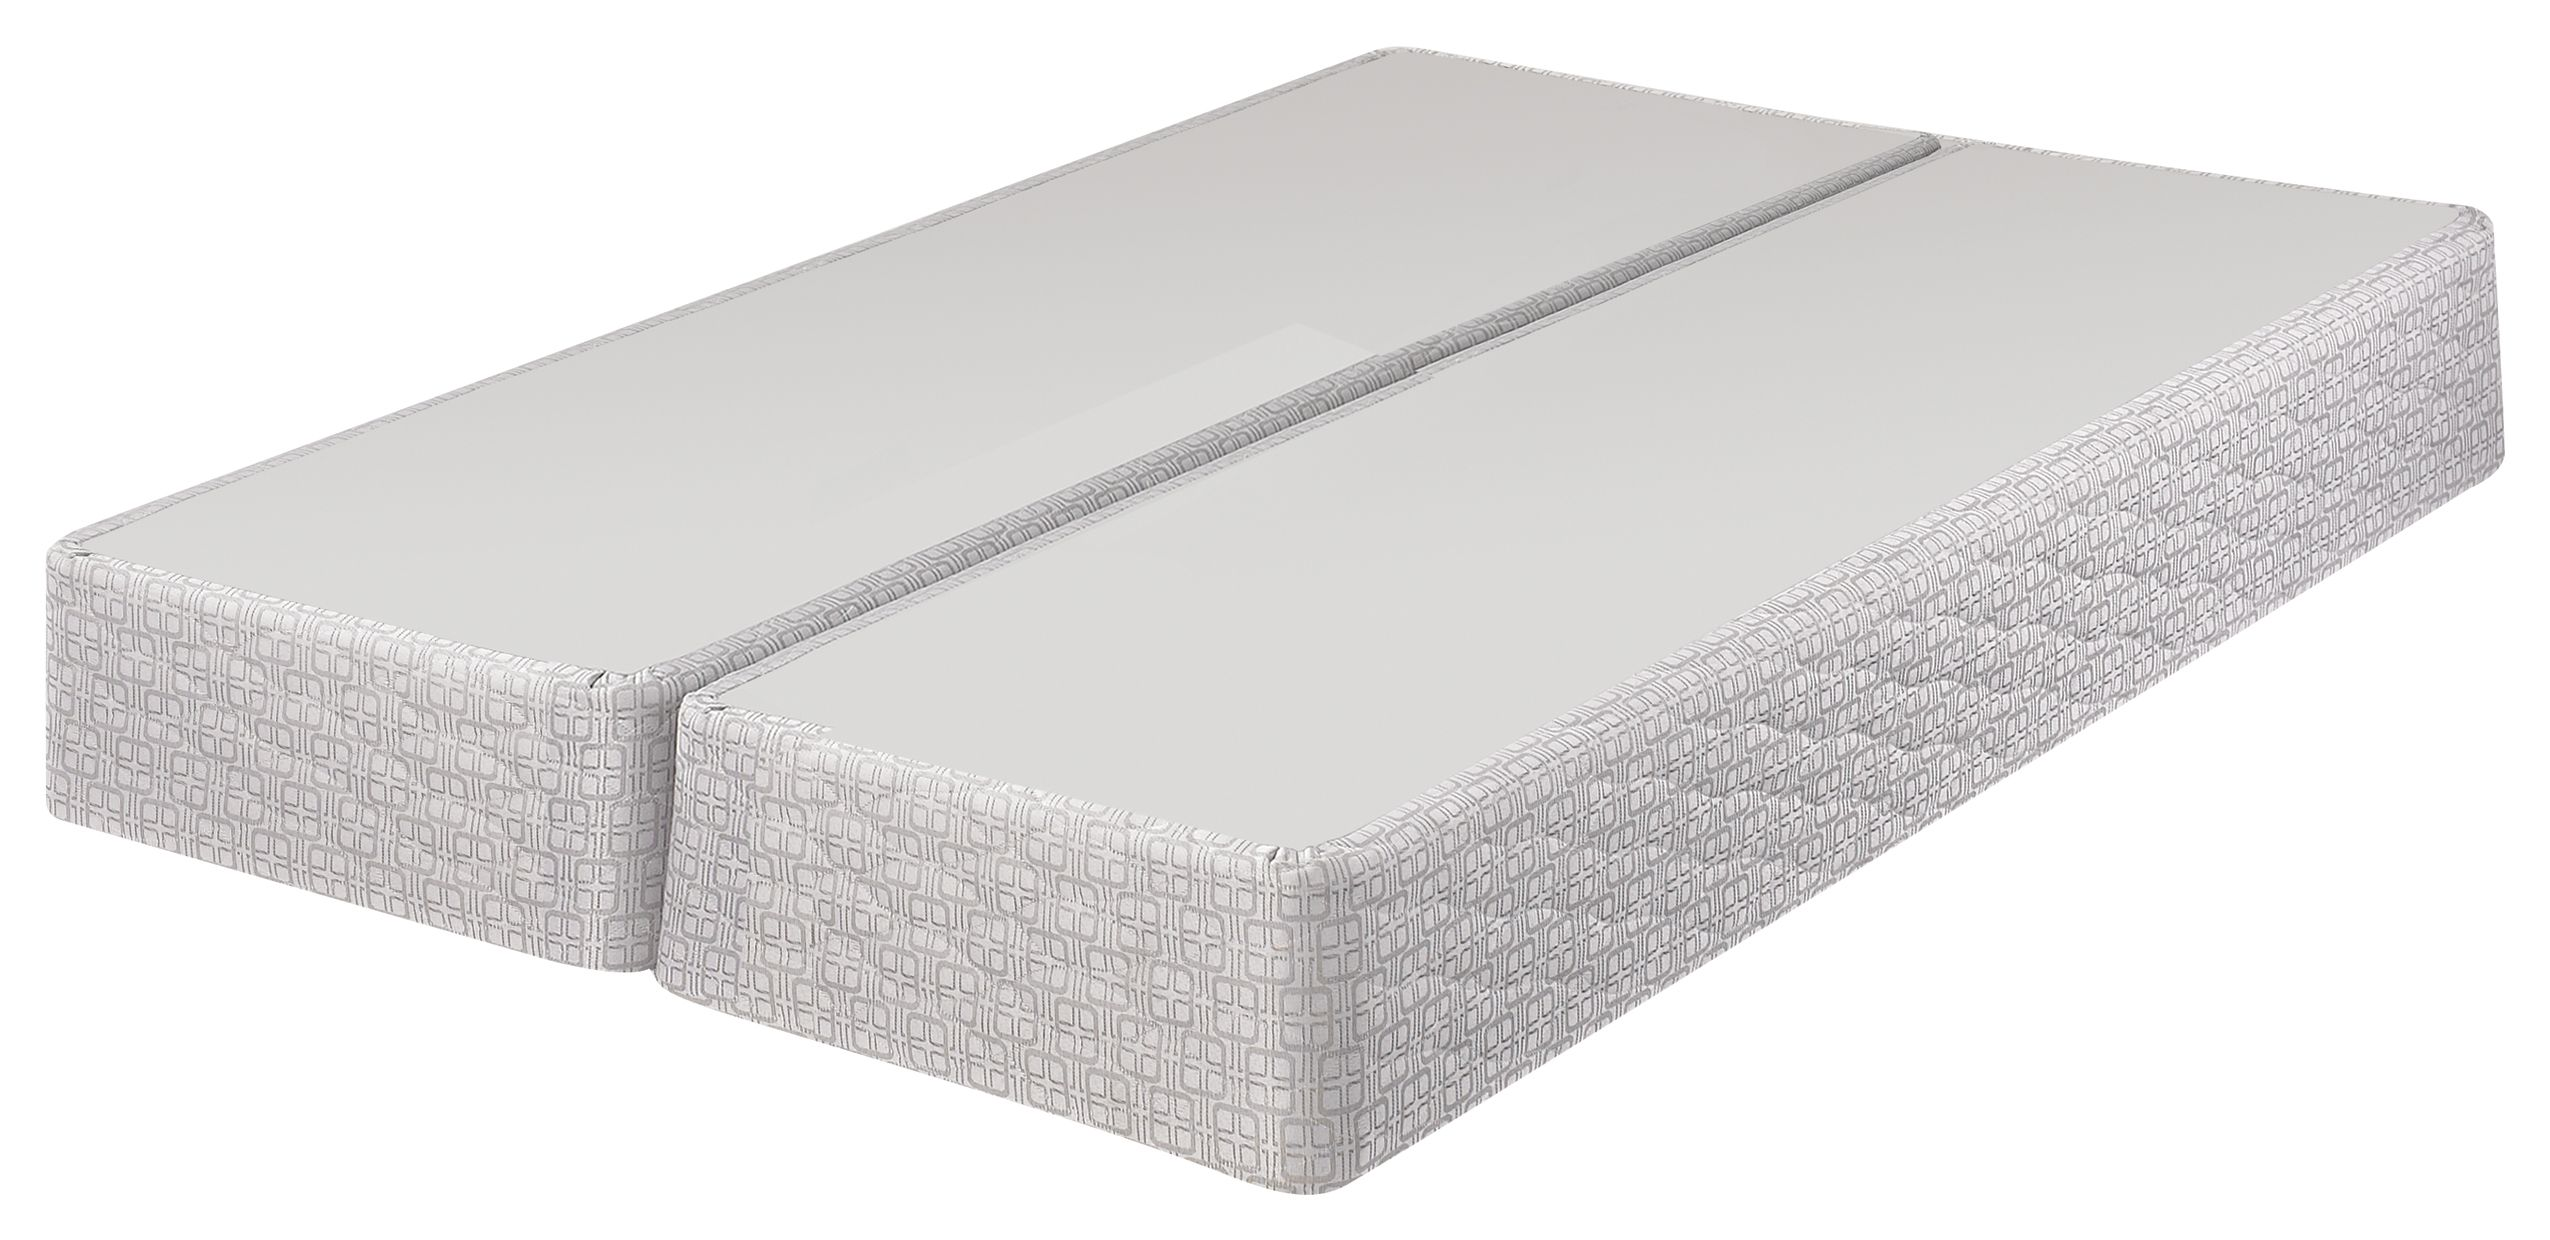 Facts About Queen Size Box Spring Adjustable Bed Base Queen Size Box Spring Box Spring